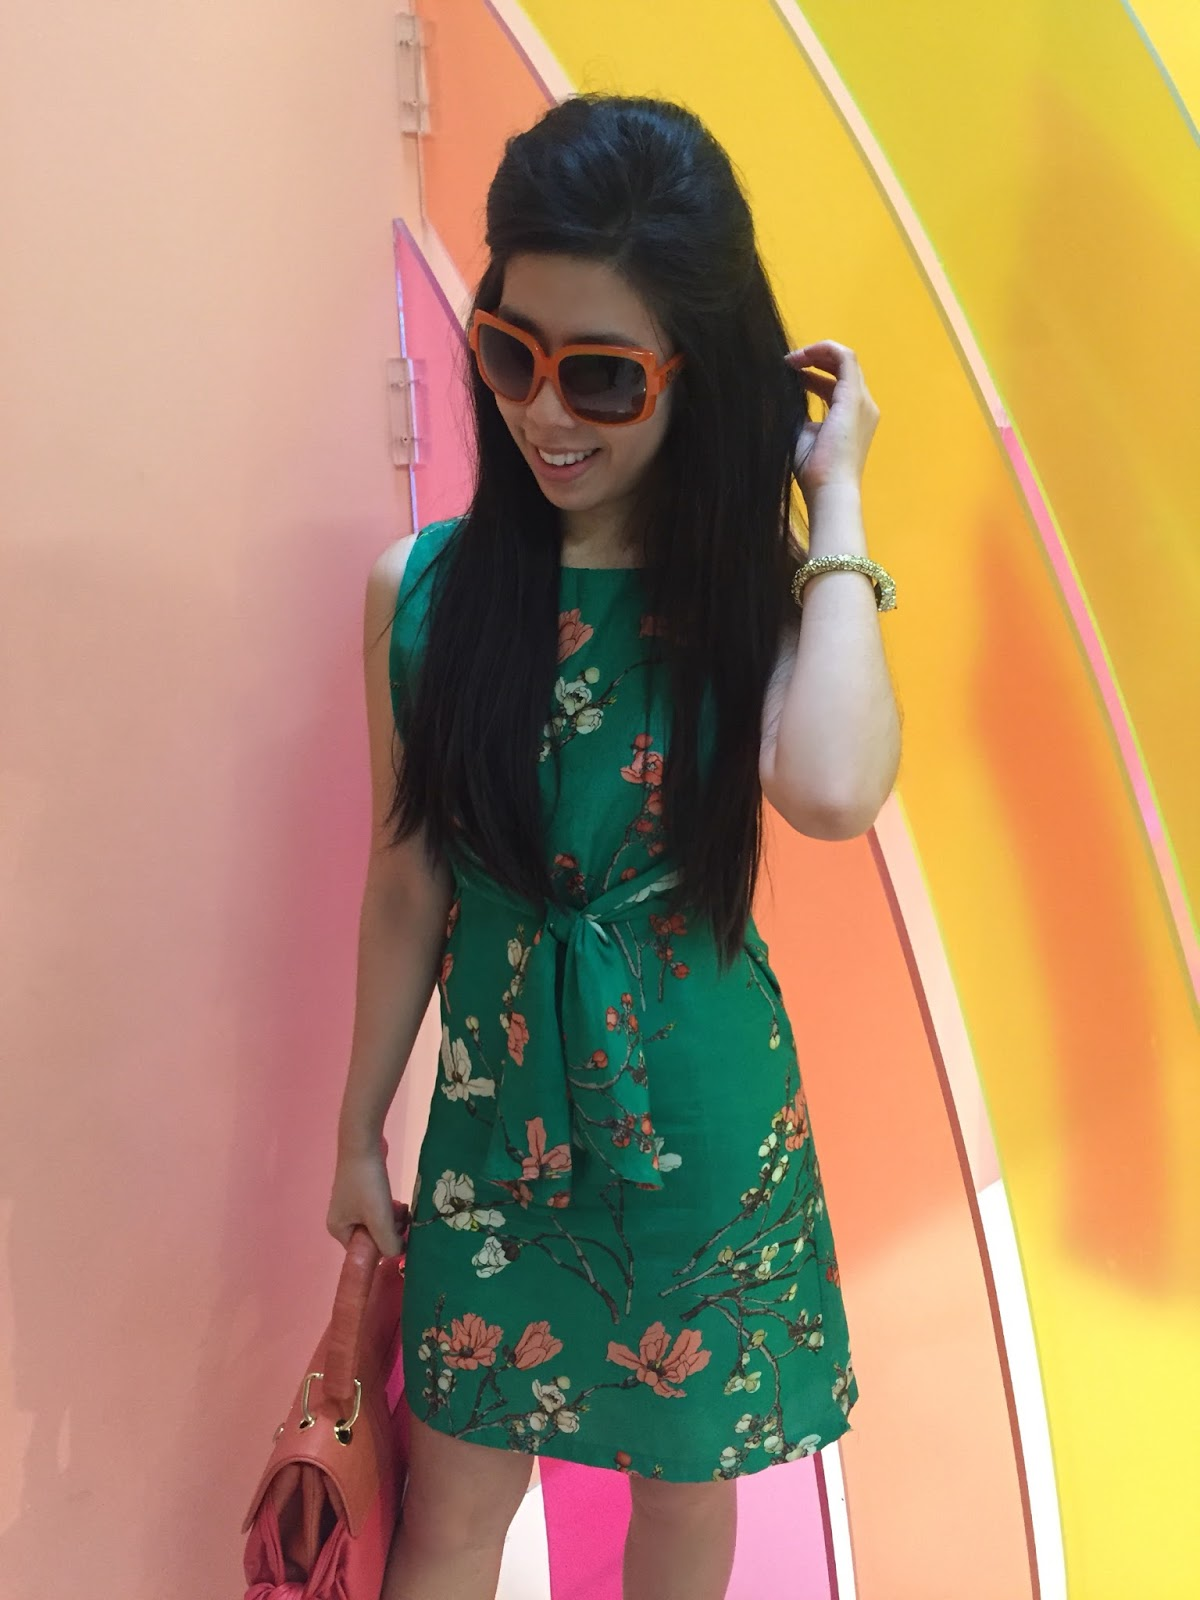 Adrienne Nguyen_Invictus_rainbow Room_Lolli Swim_Fashion Blogger_Museum of Ice Cream Los Angeles